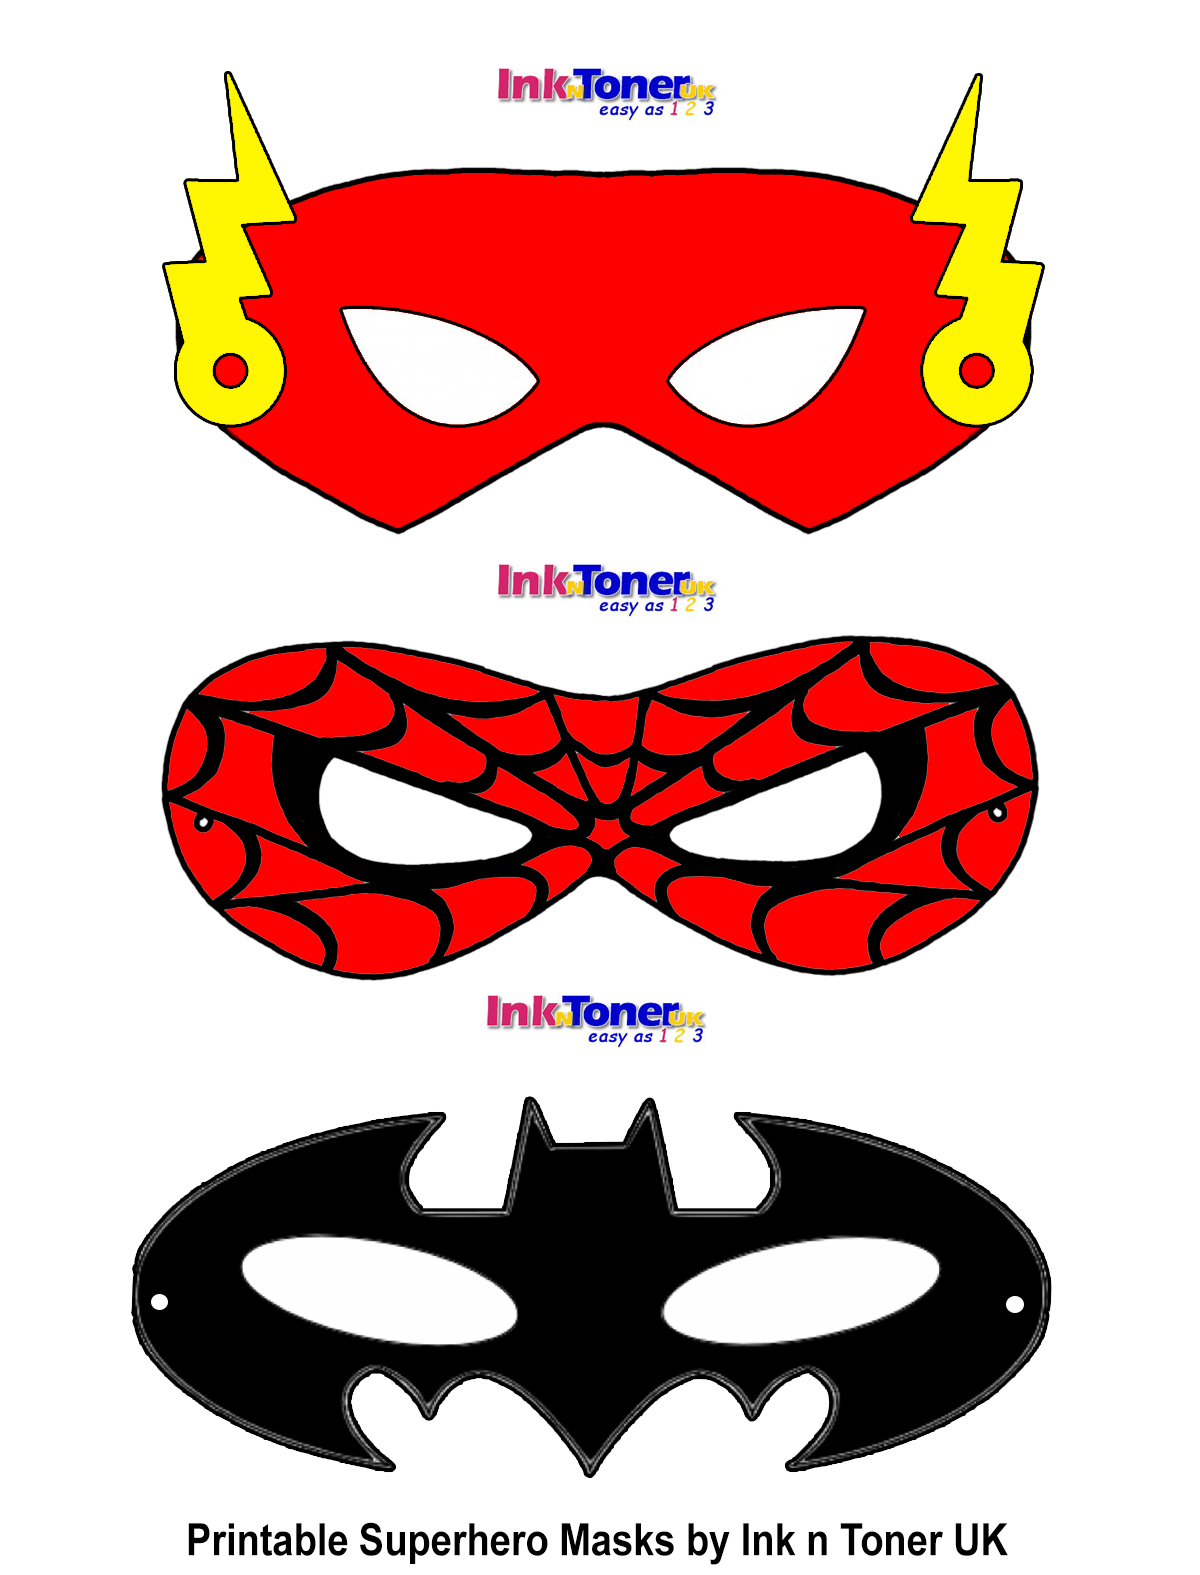 Remarkable image for free printable superhero masks